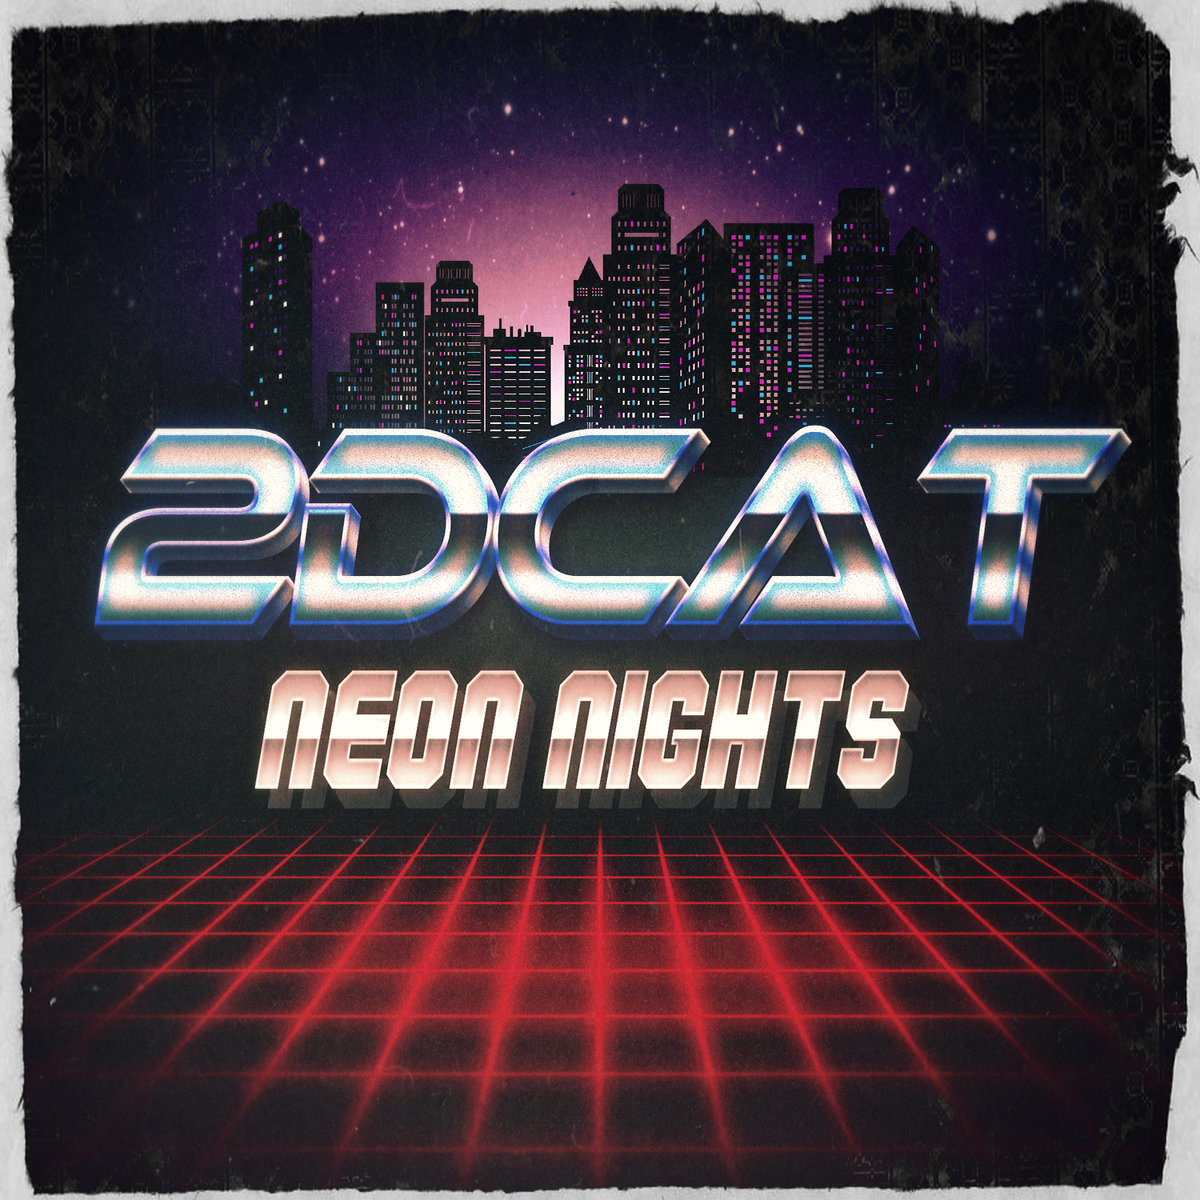 2DCATNeon Nights-2DCAT-Art